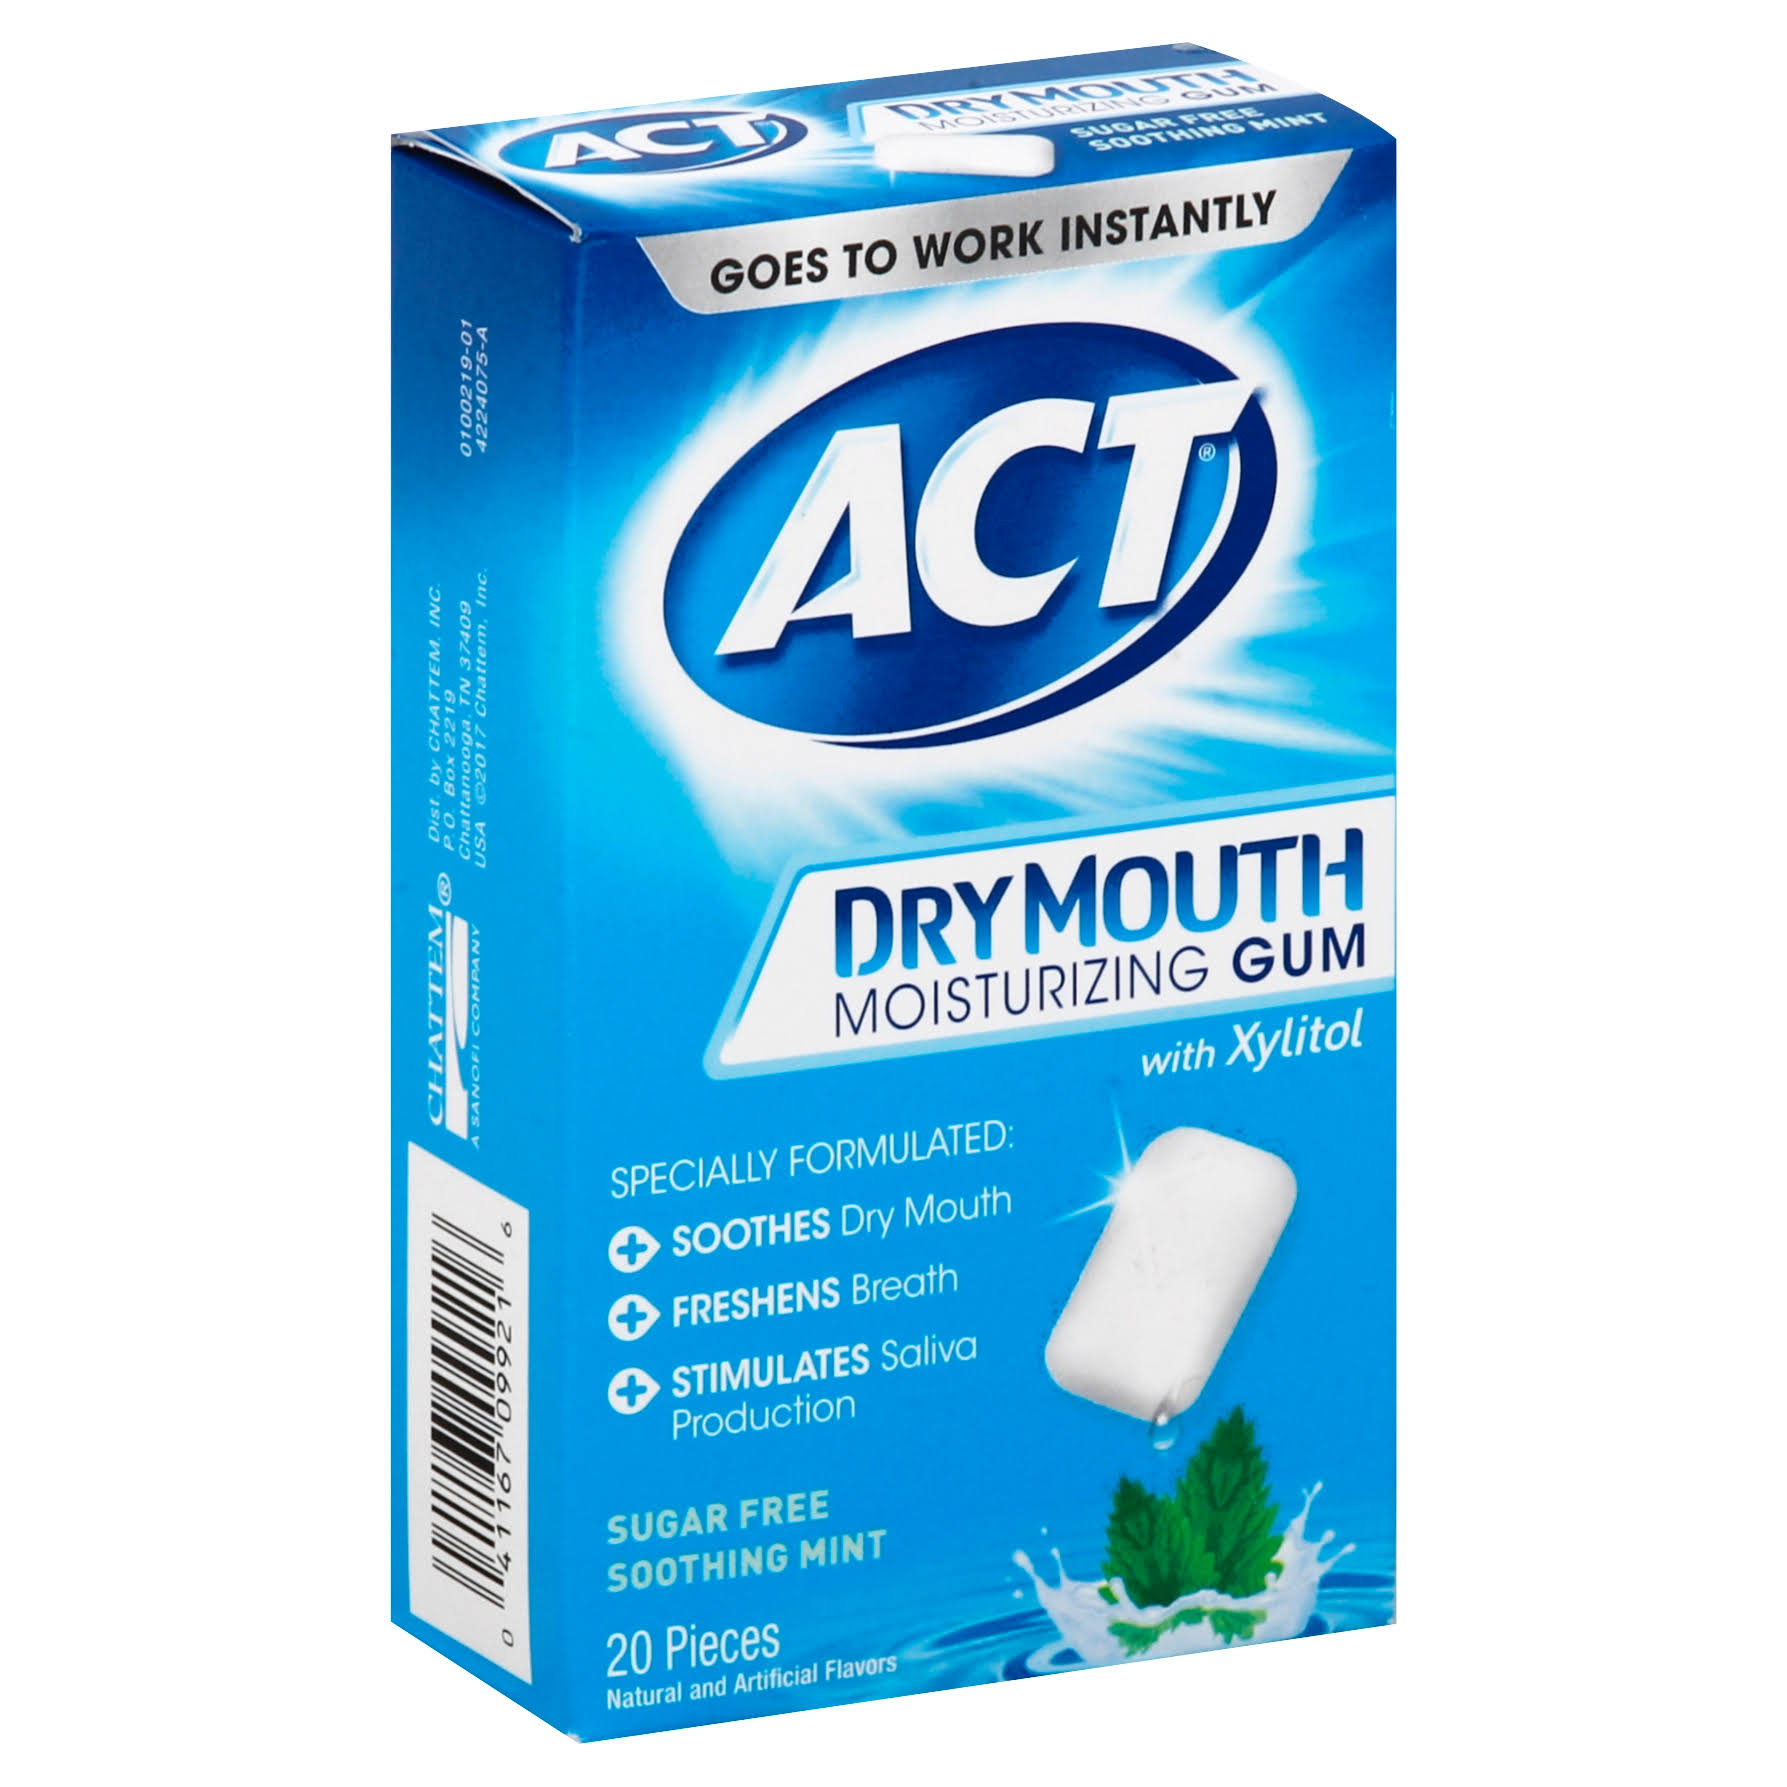 ACT Moisturizing Gum, with Xylitol, Sugar Free - 20 pieces